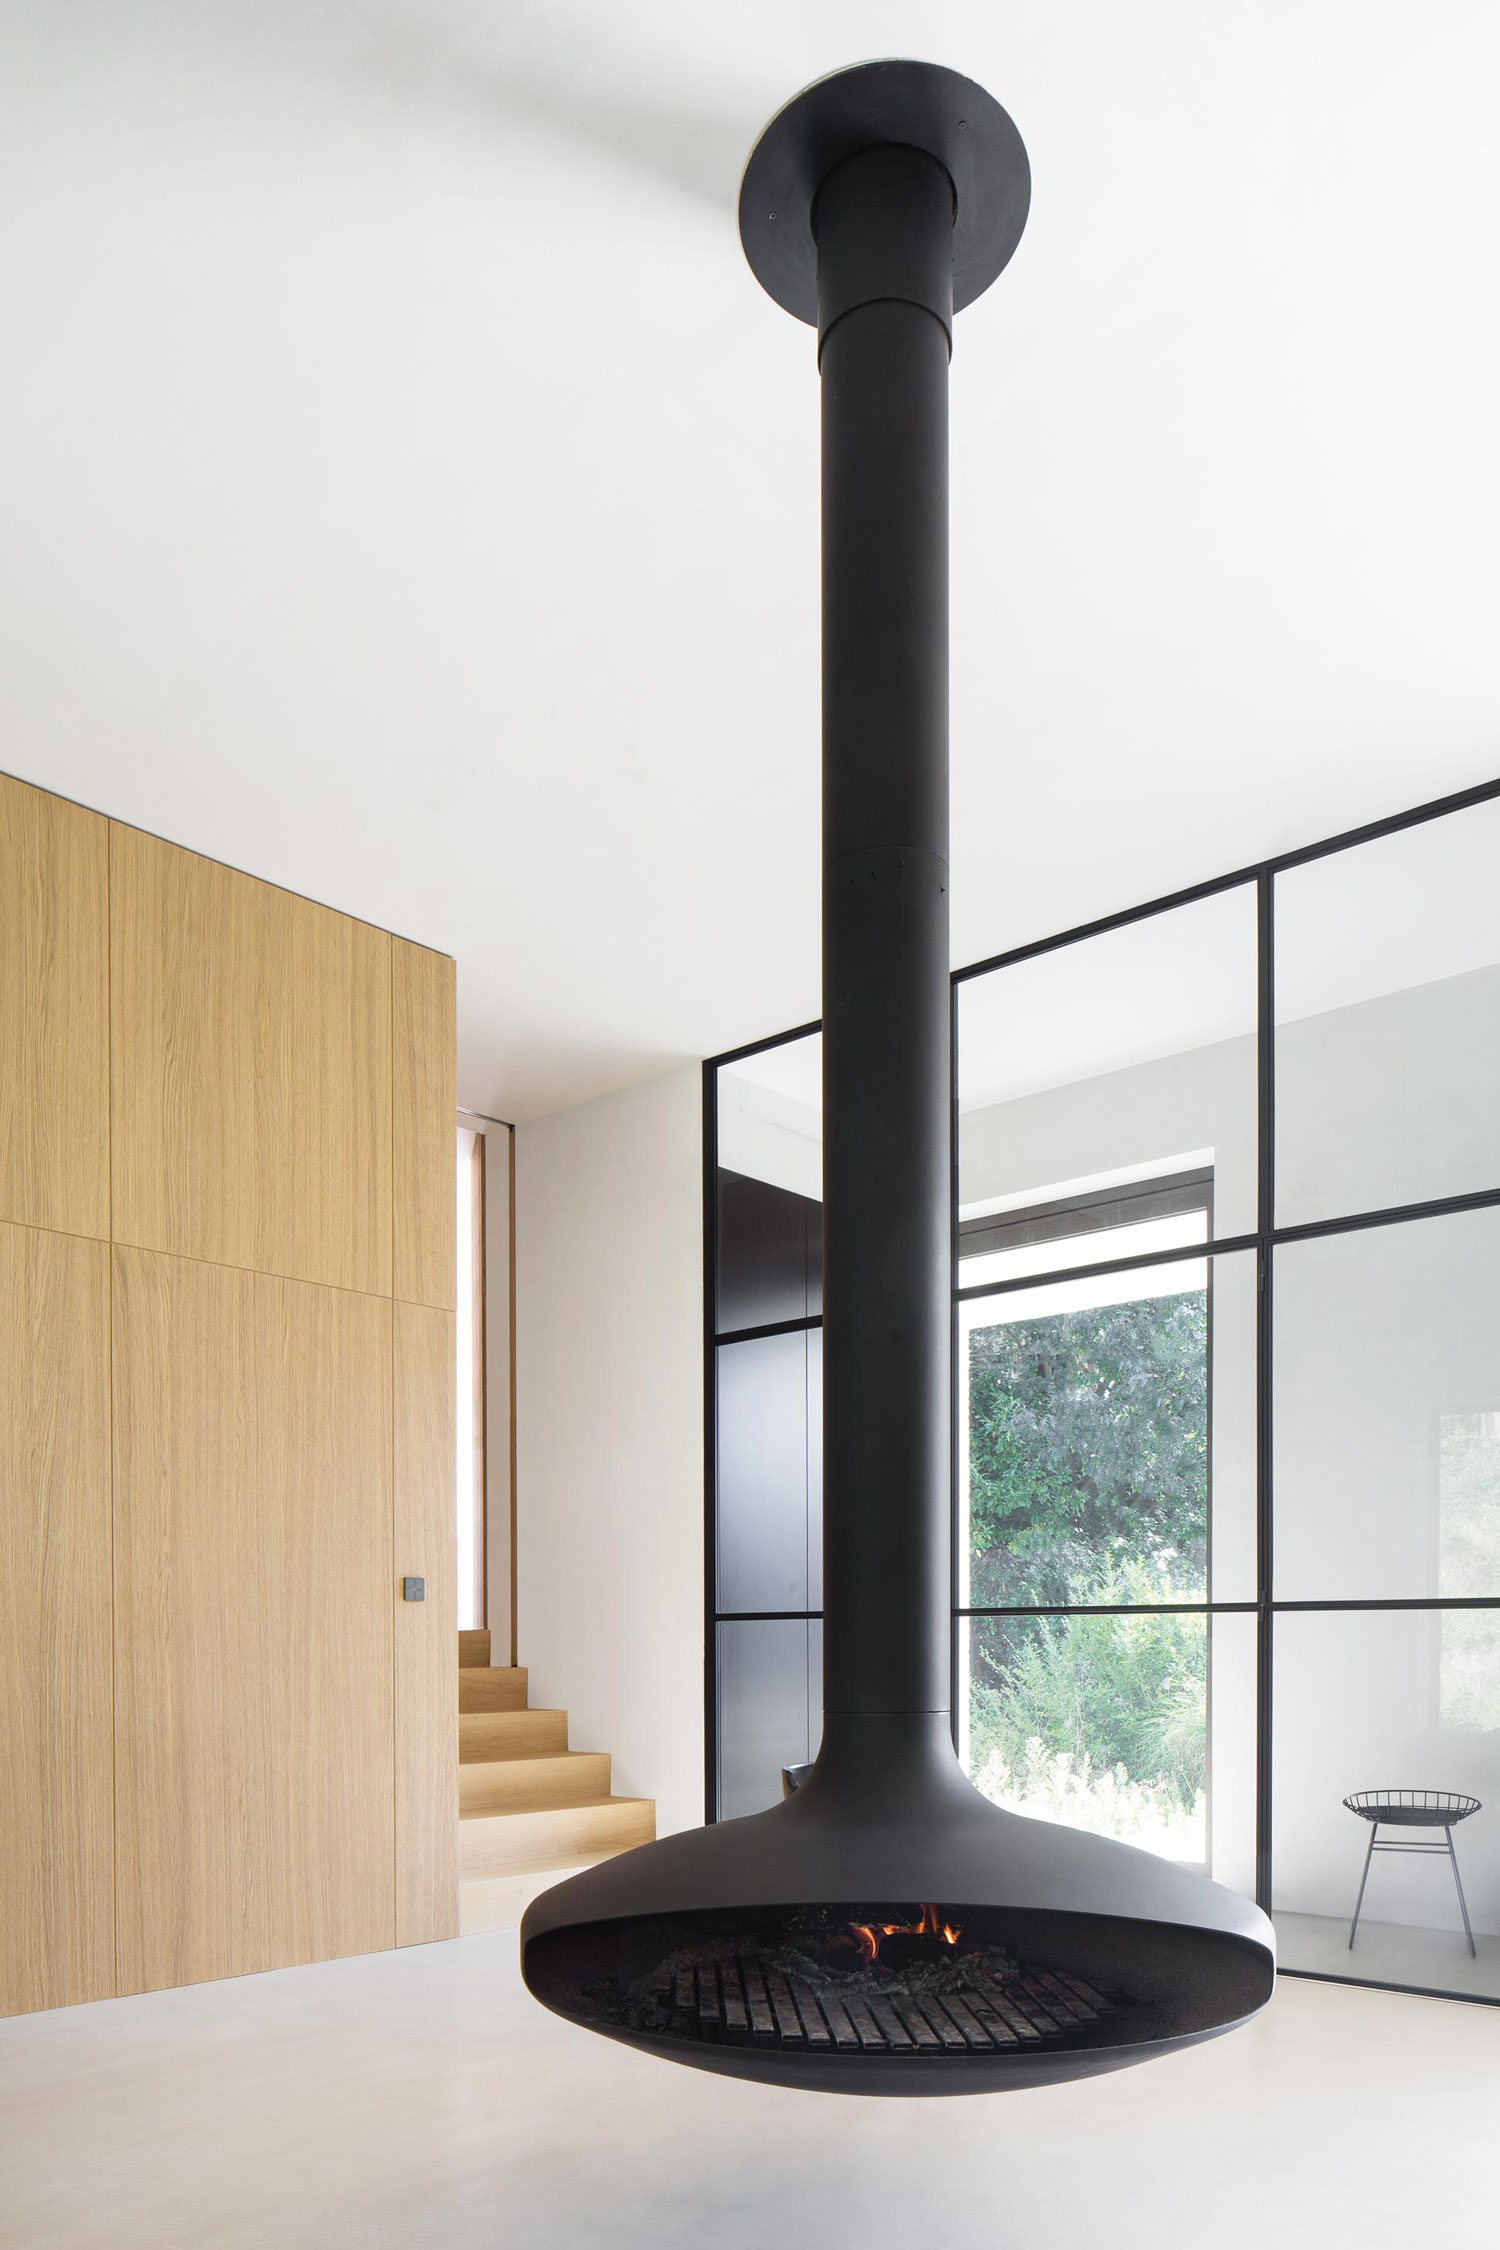 Residence WV by Arjaan De Feyter   Yellowtrace